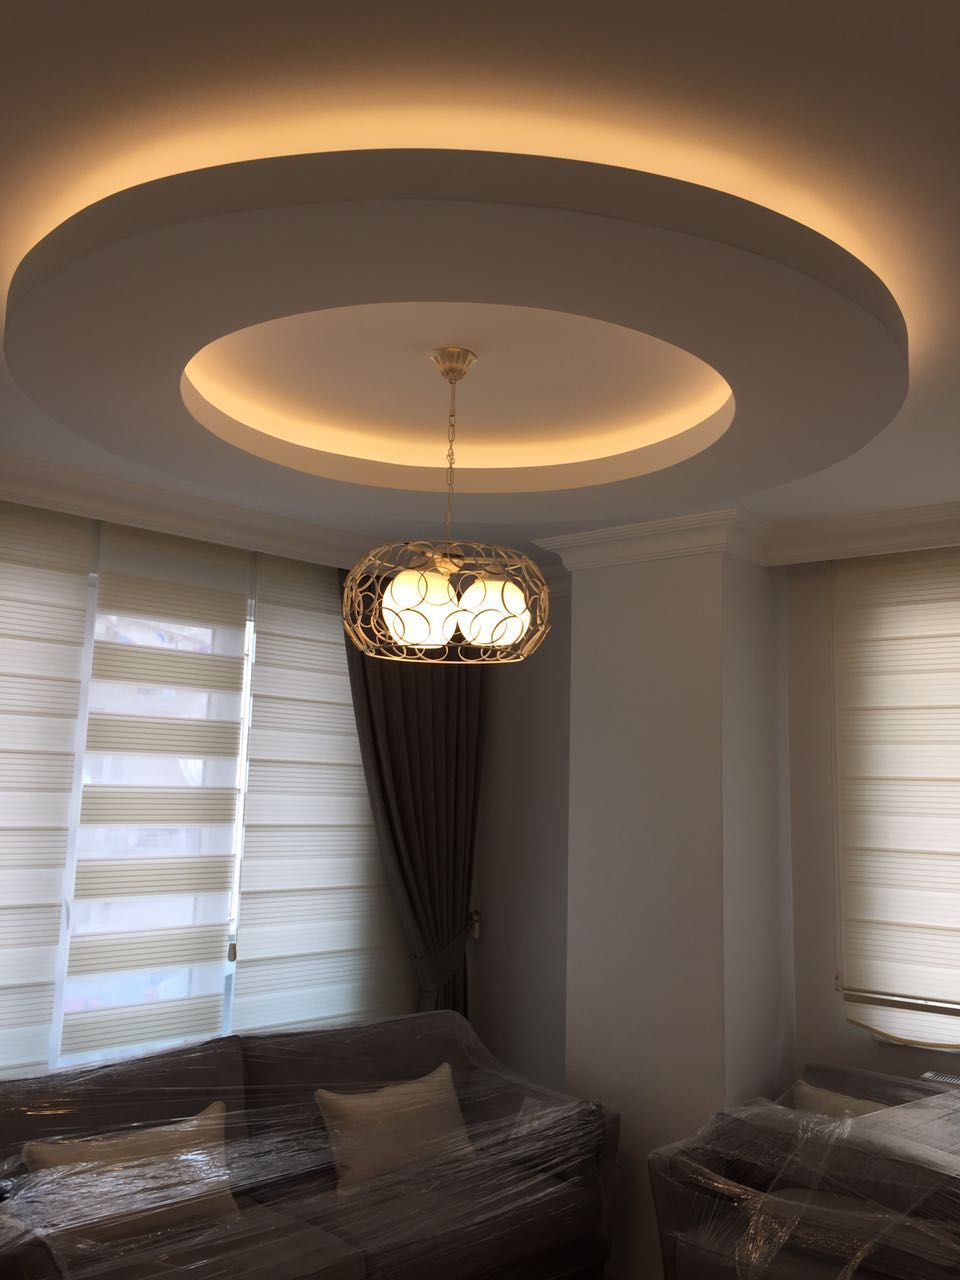 False Ceiling Designs For Living Room In Flats: Pin De ANSH SINGH En Living Room